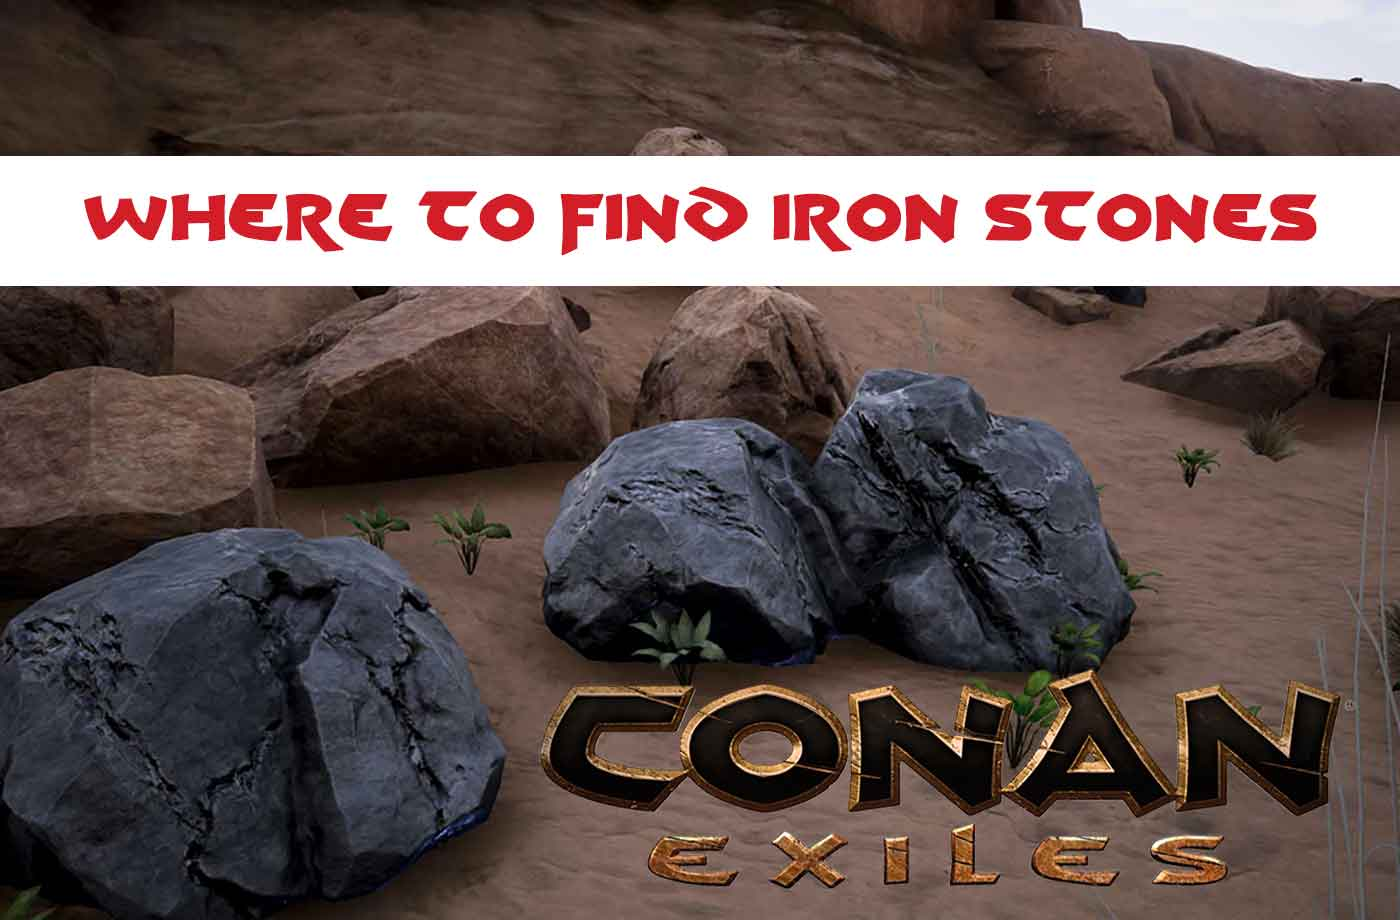 How to get and where to find iron (iron stones) in Conan Exiles